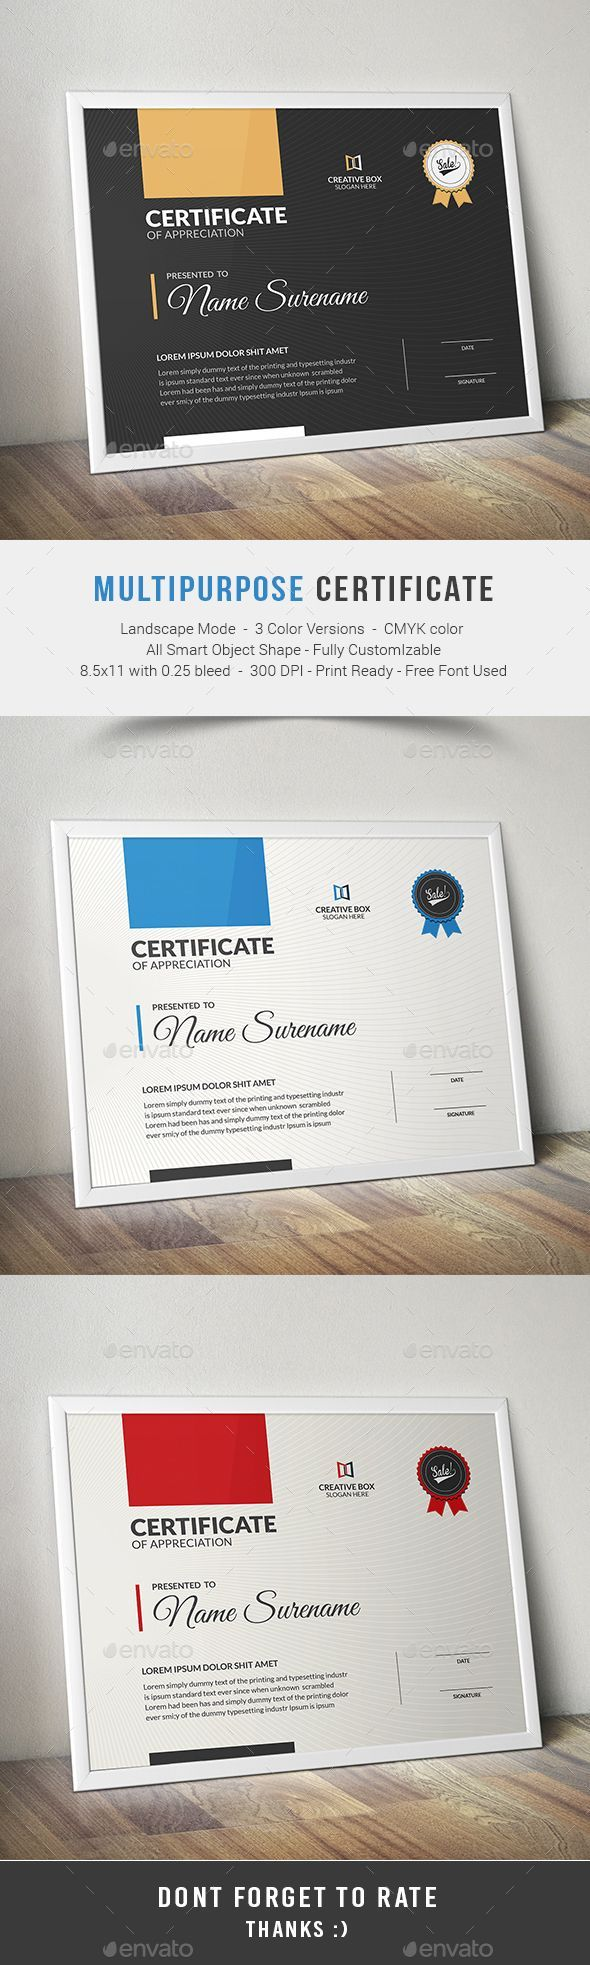 100+ Amazing Photo Realistic Certificate Templates | design